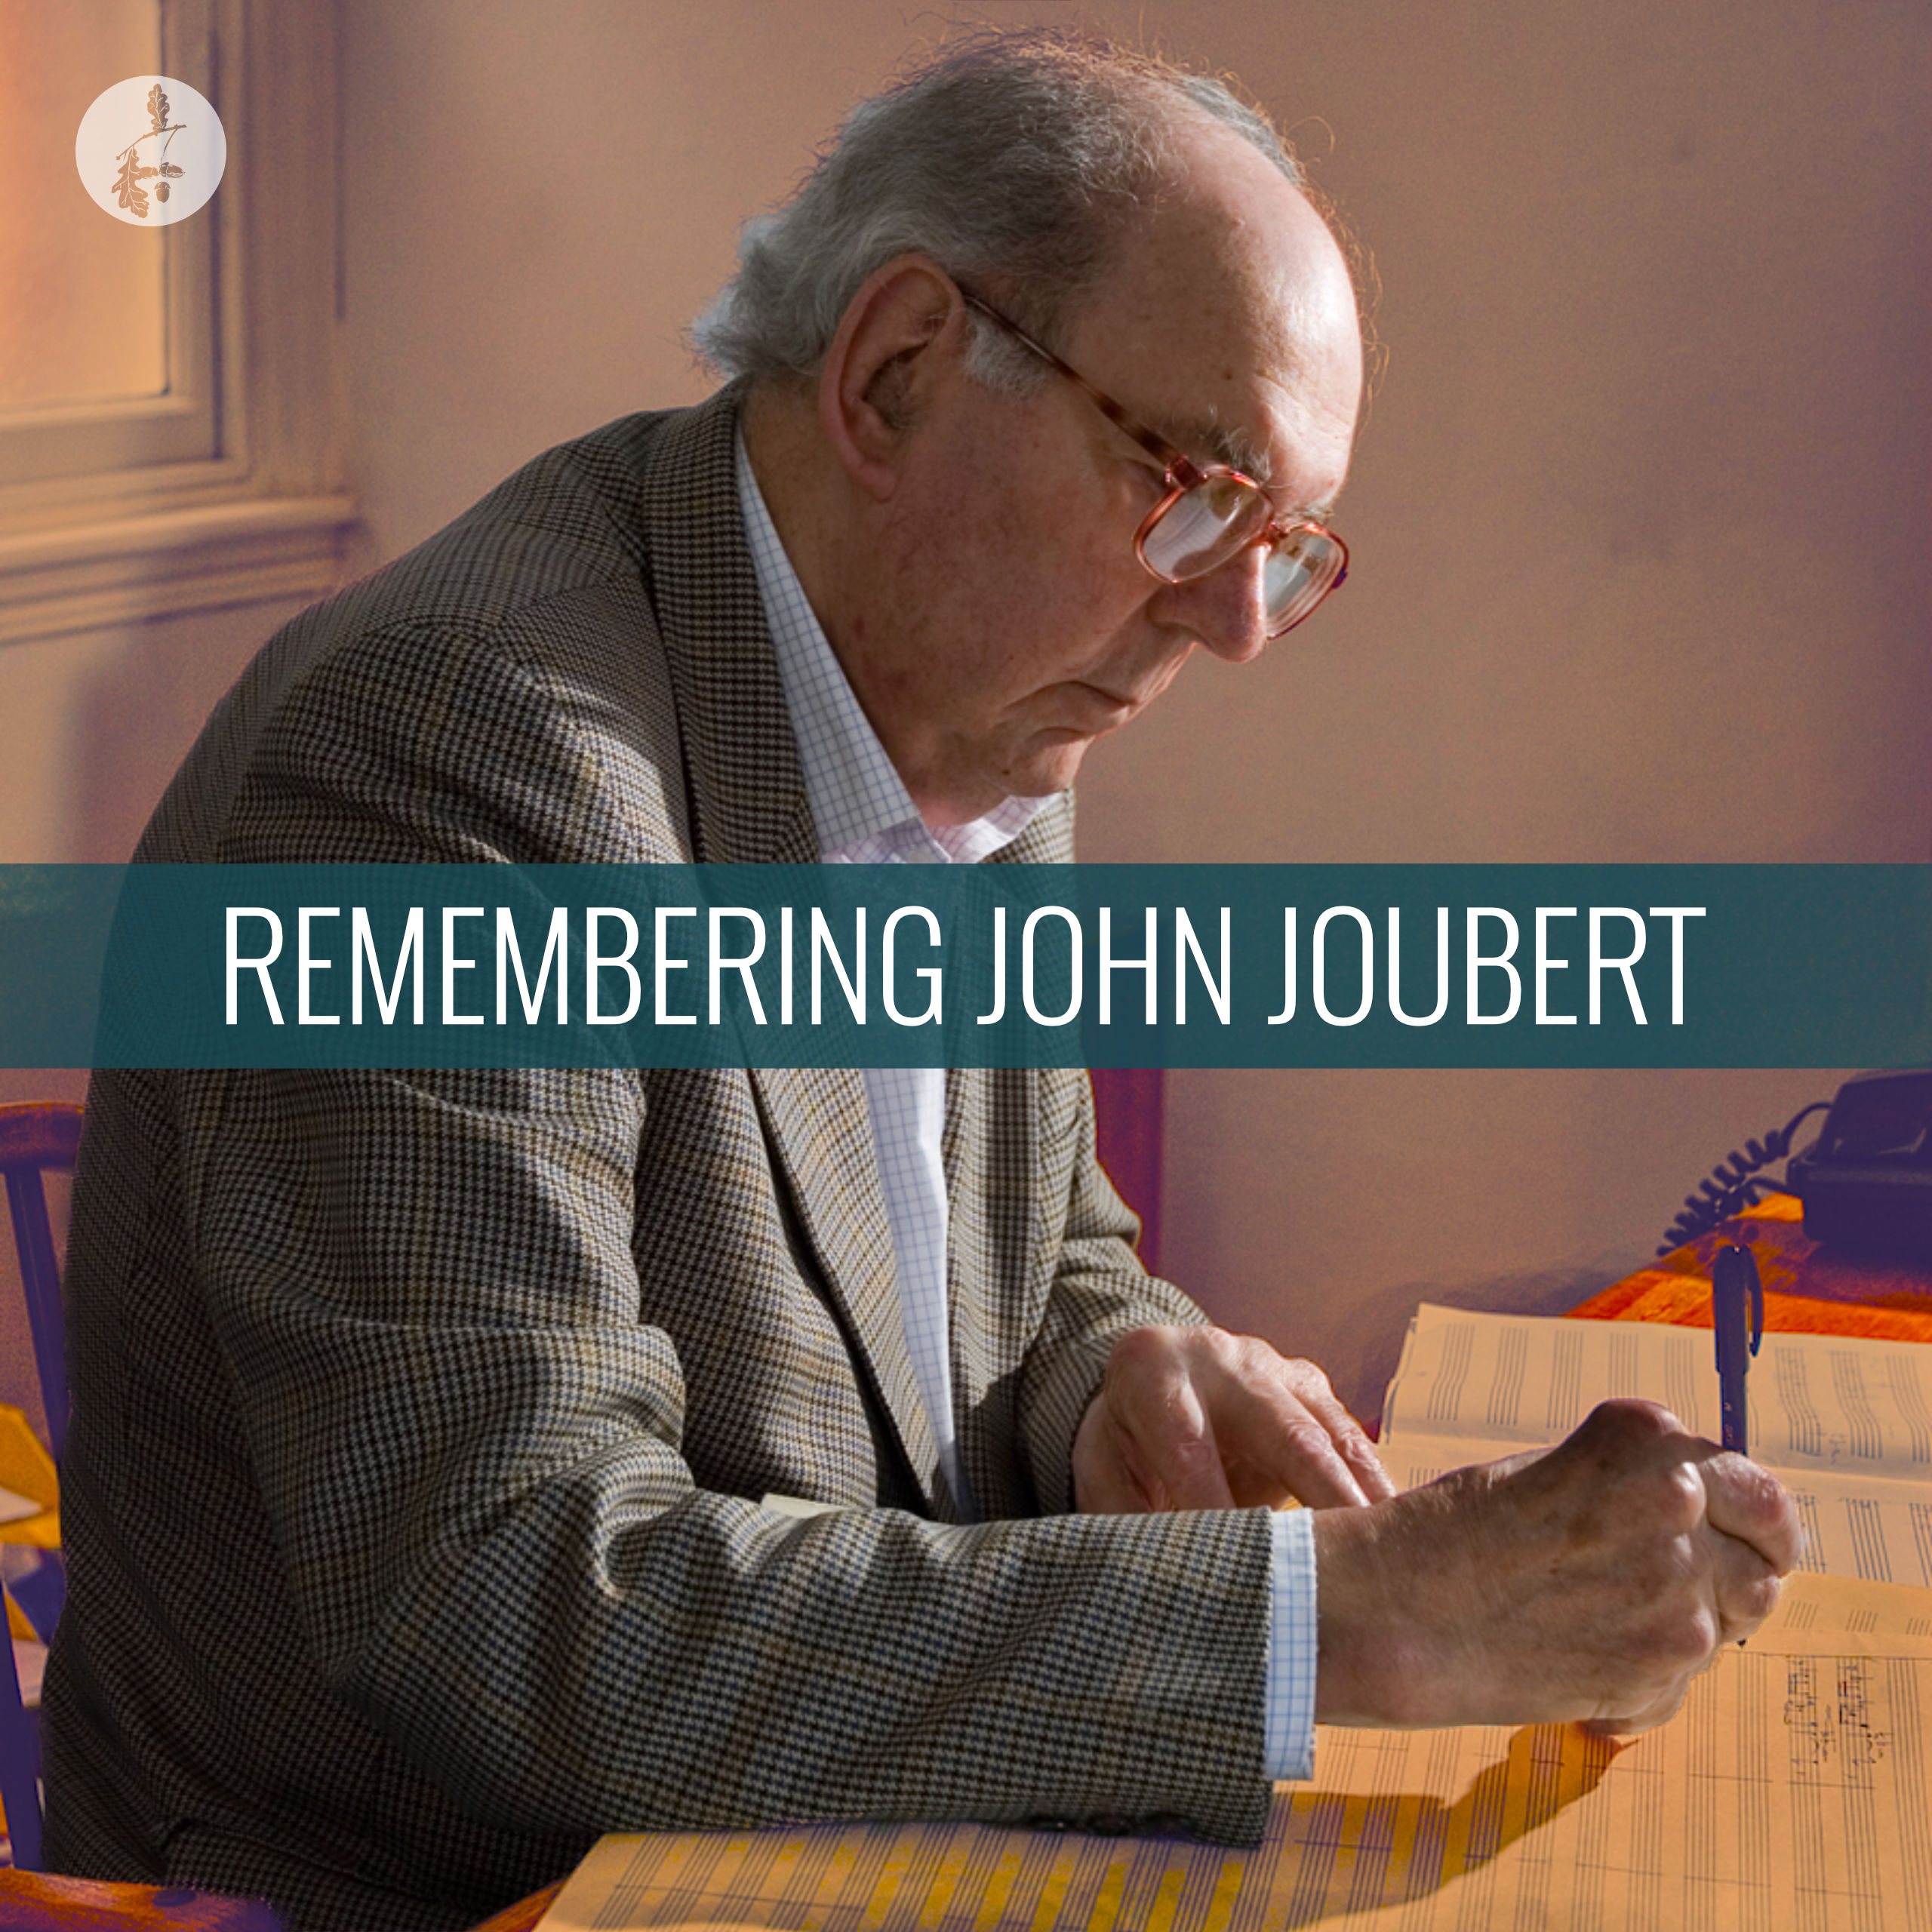 Remembering John Joubert